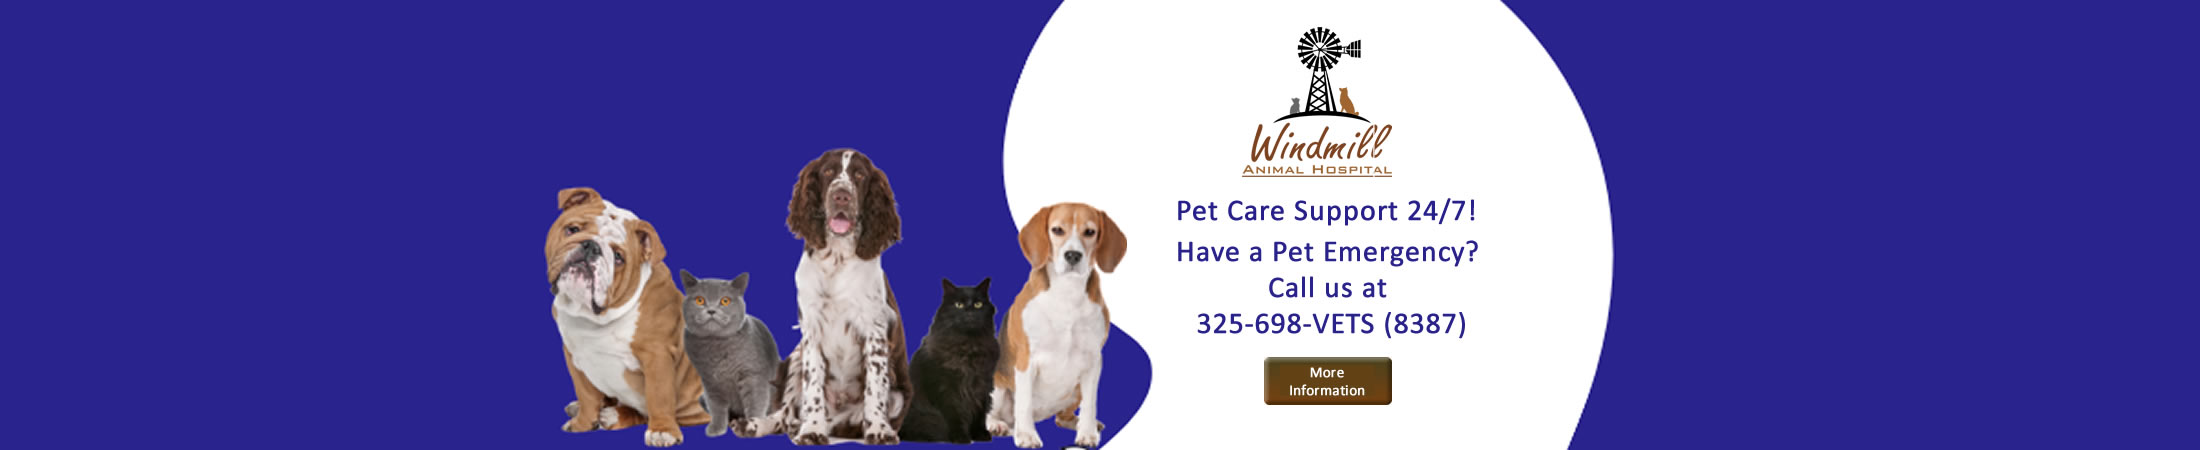 Windmill Animal Hospital 24 Hour Pet Care